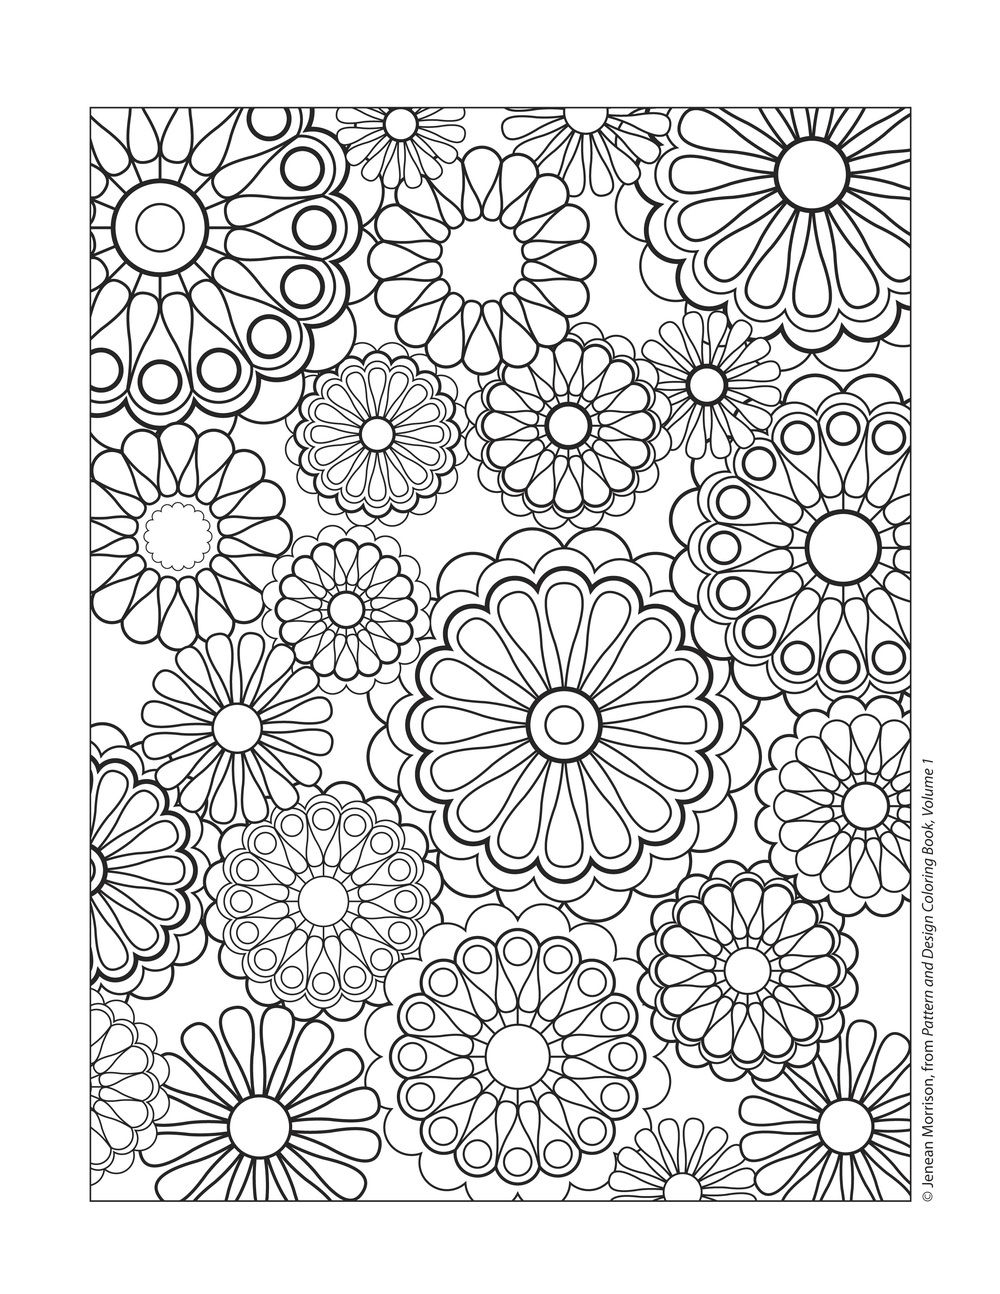 Tessellation Coloring Pages Free Printable  to Print 20q - To print for your project